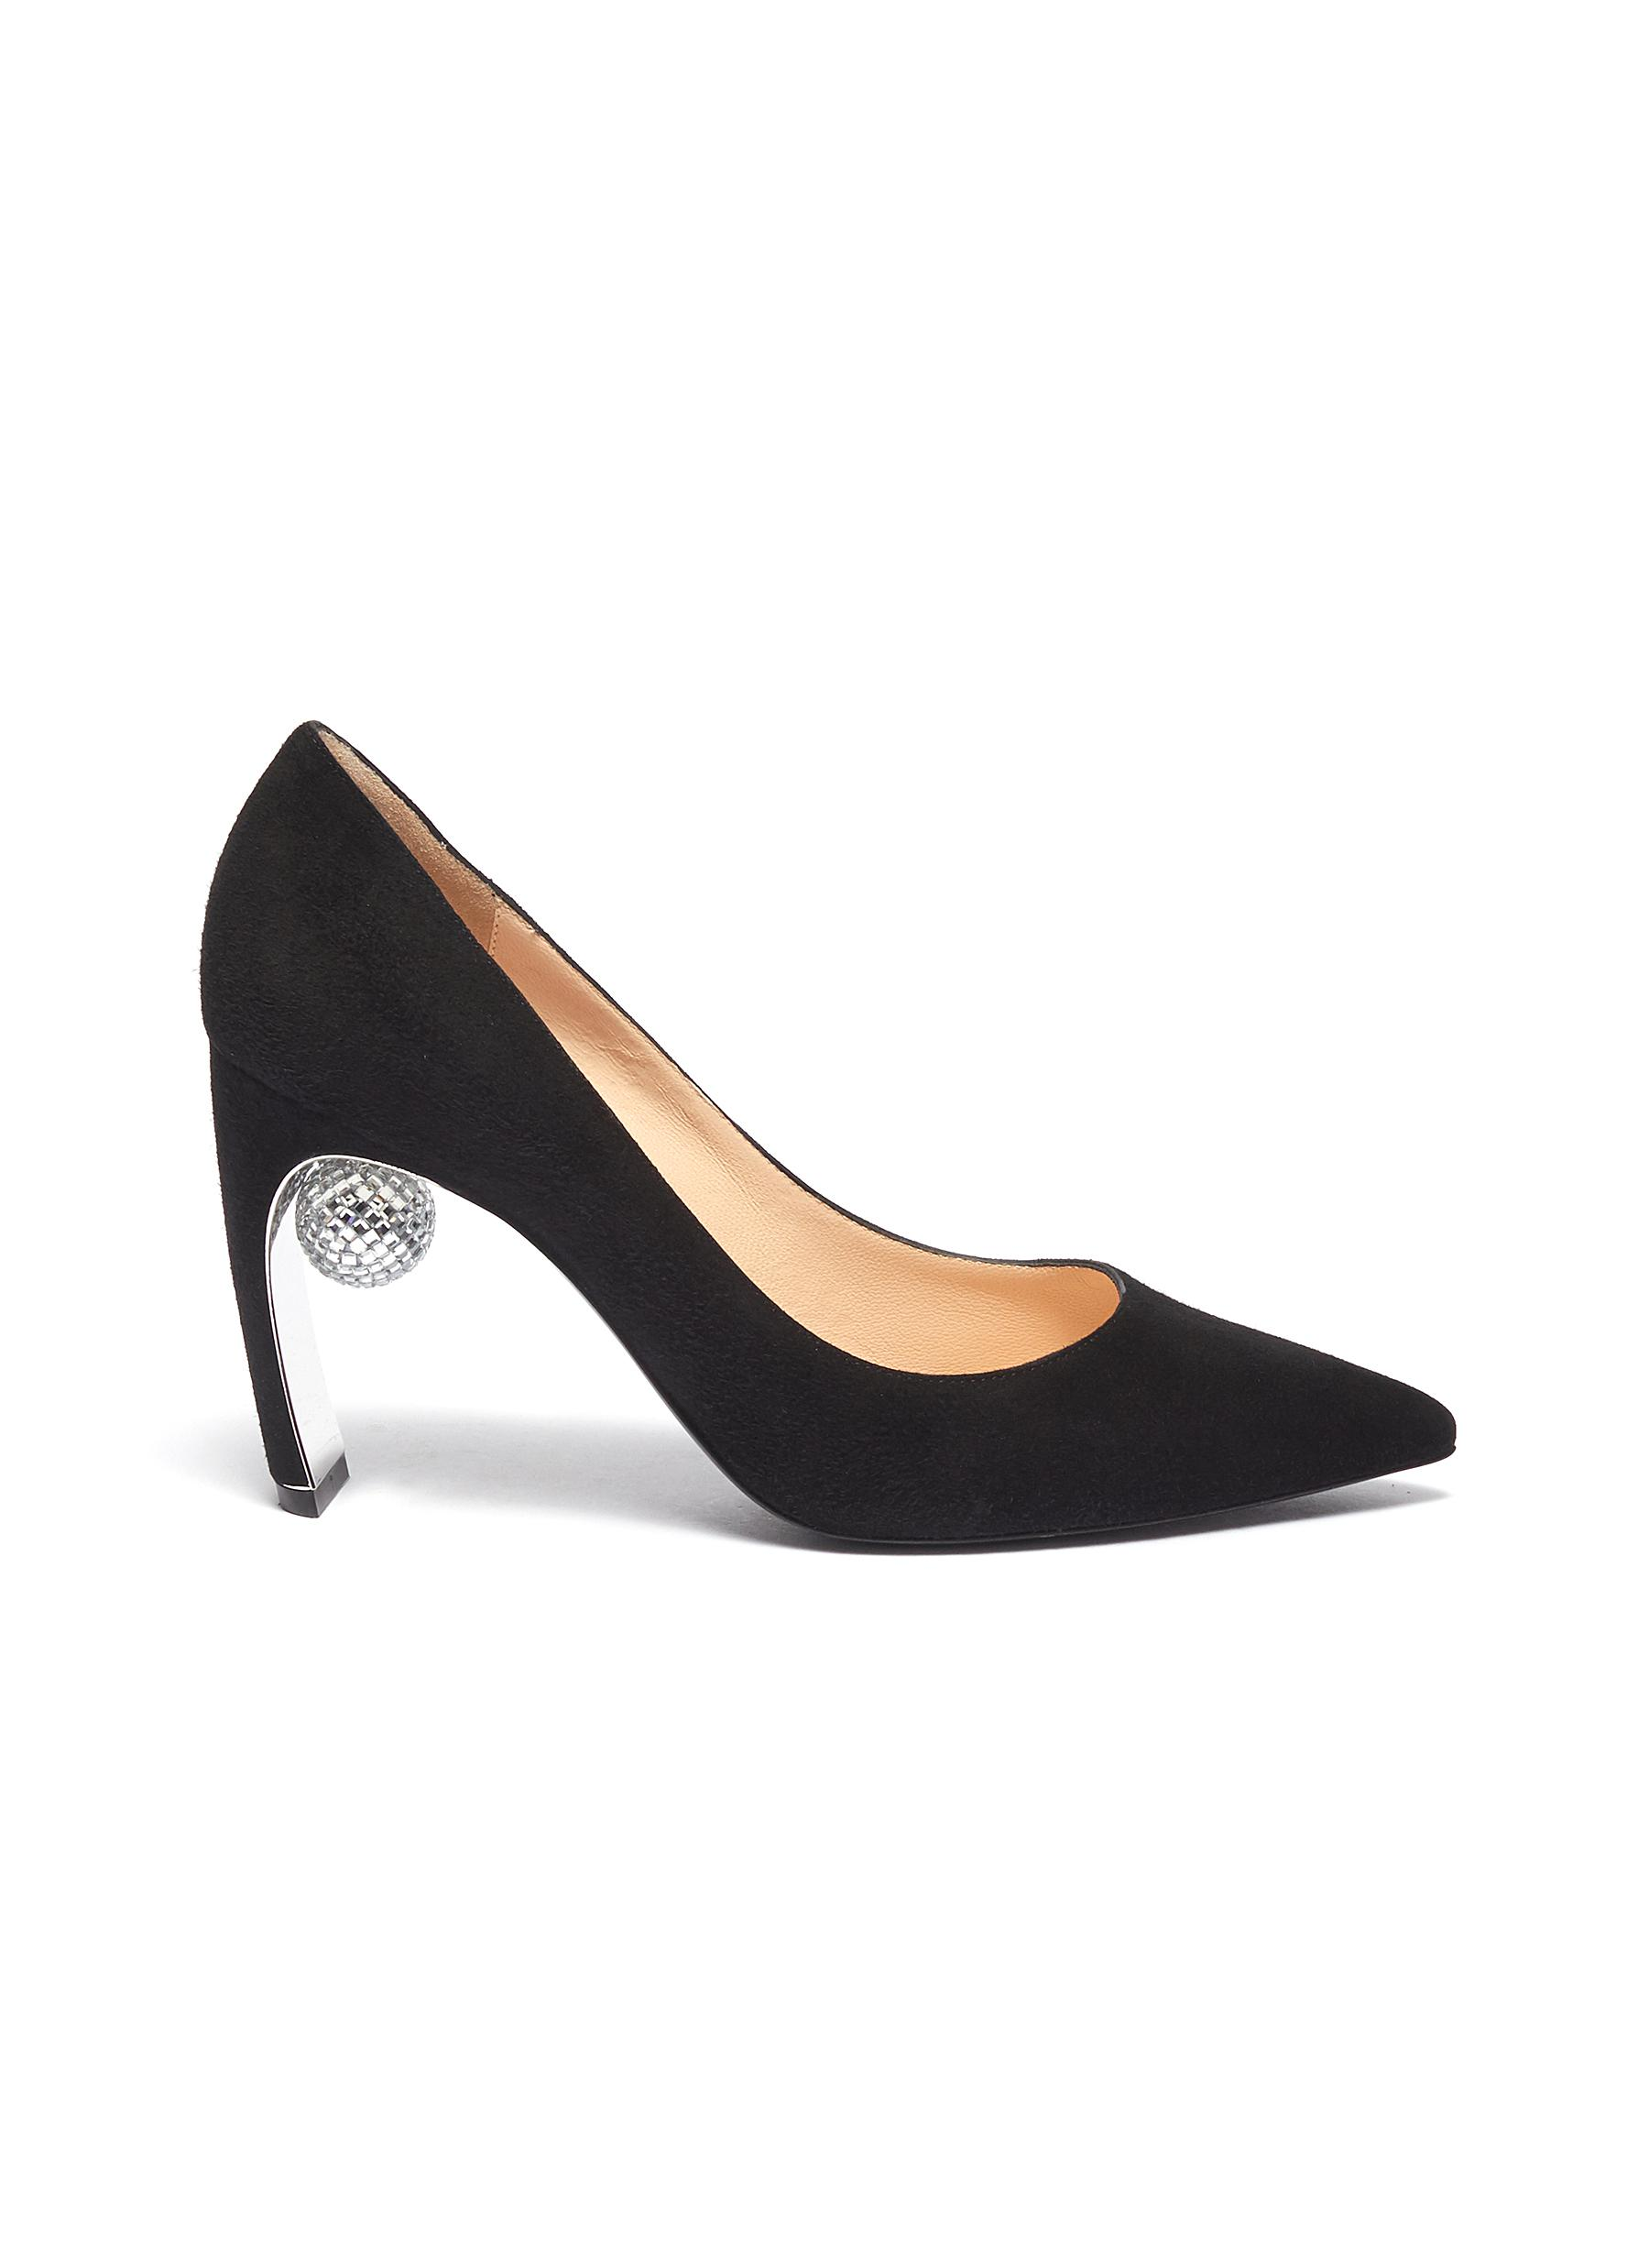 Maeva glass crystal ball suede pumps by Nicholas Kirkwood